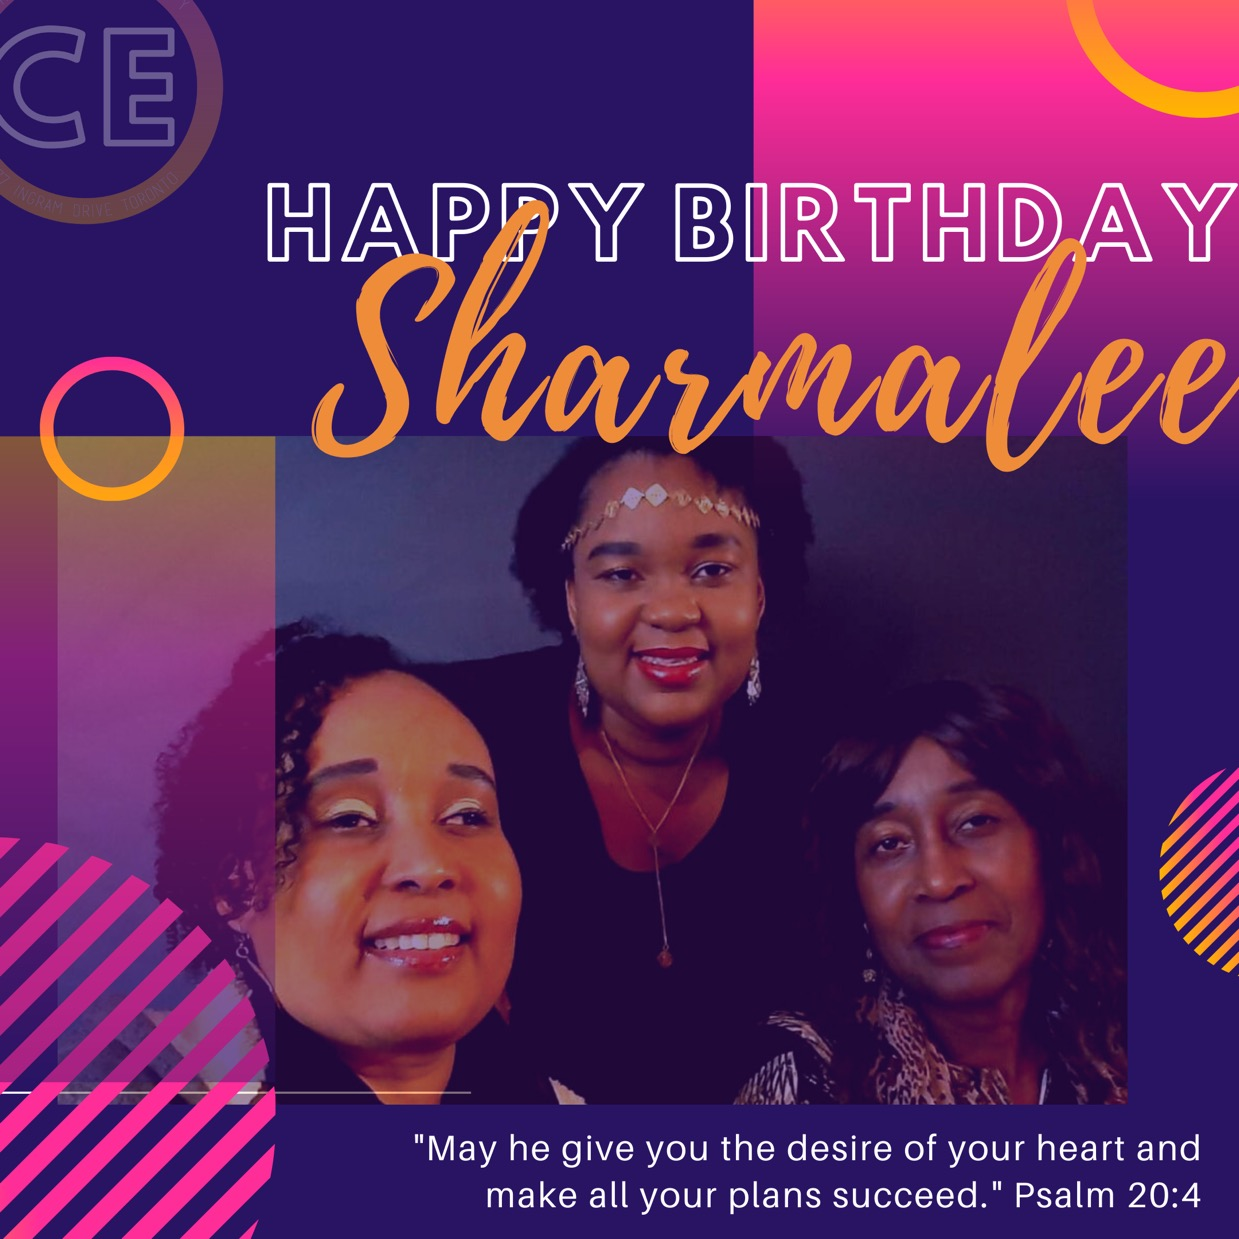 Happy Birthday Dearest Sharmalee. You